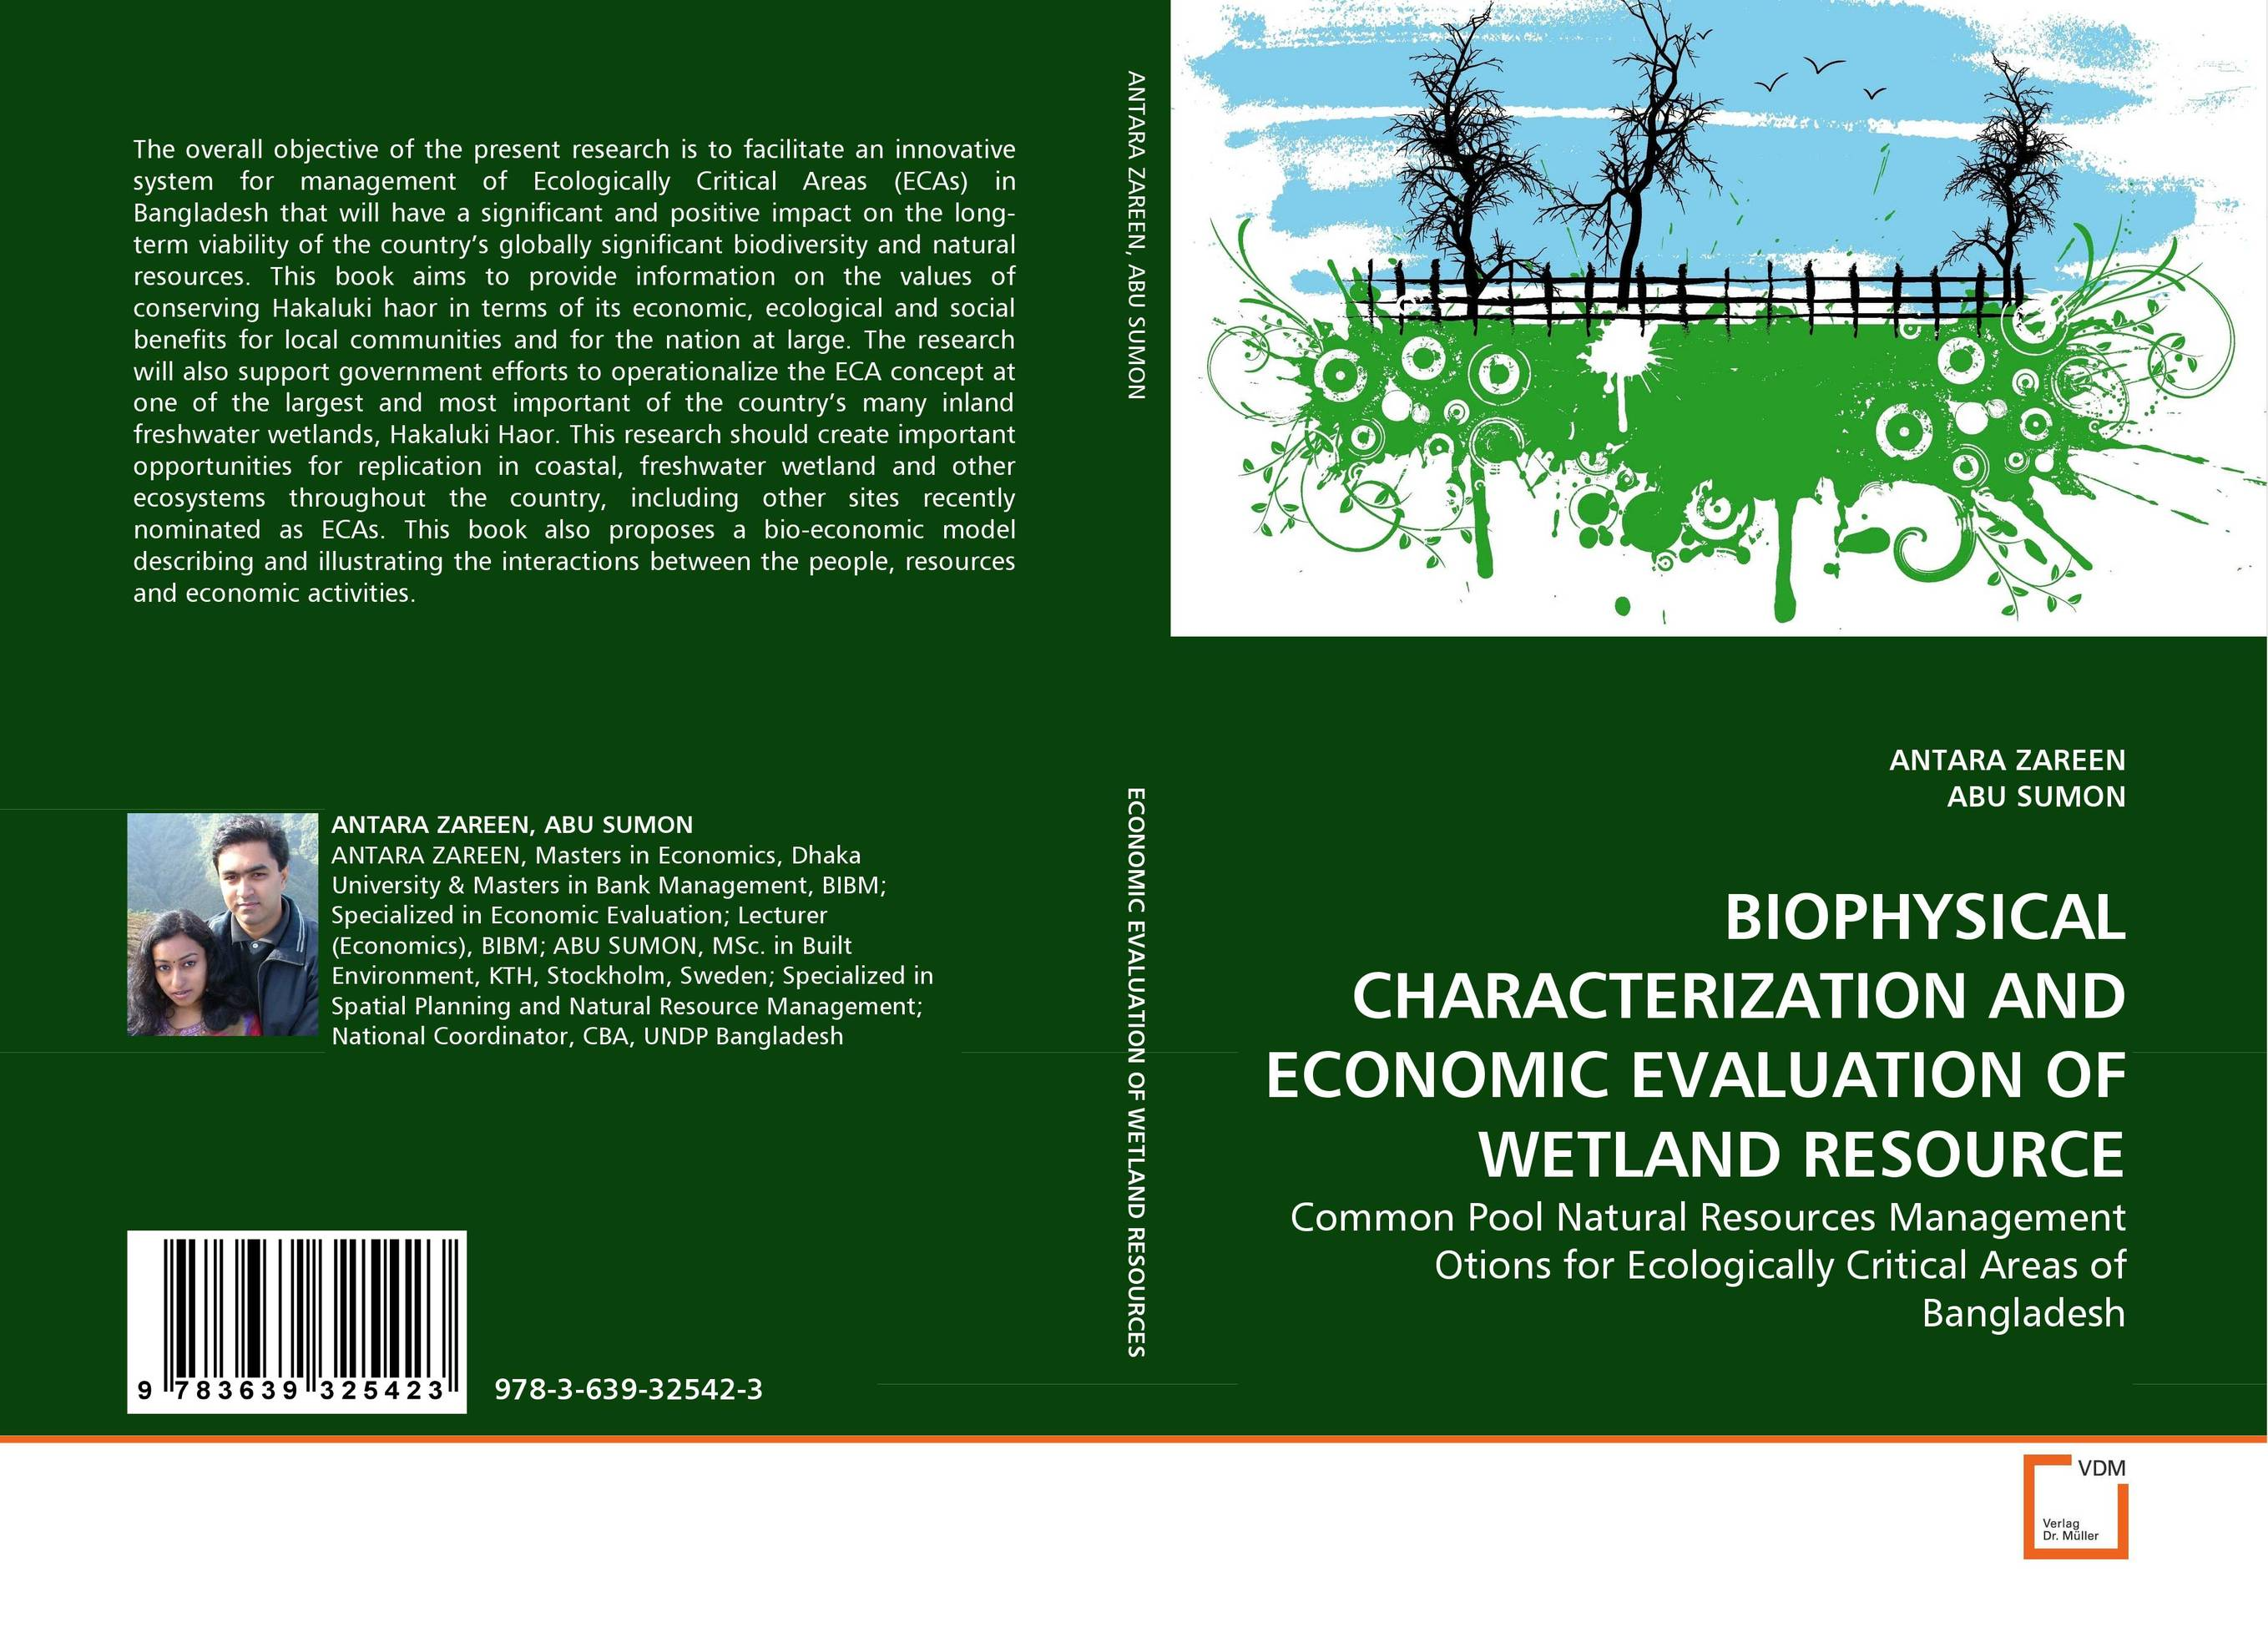 BIOPHYSICAL CHARACTERIZATION AND ECONOMIC EVALUATION OF WETLAND RESOURCE the failure of economic nationalism in slovenia s transition